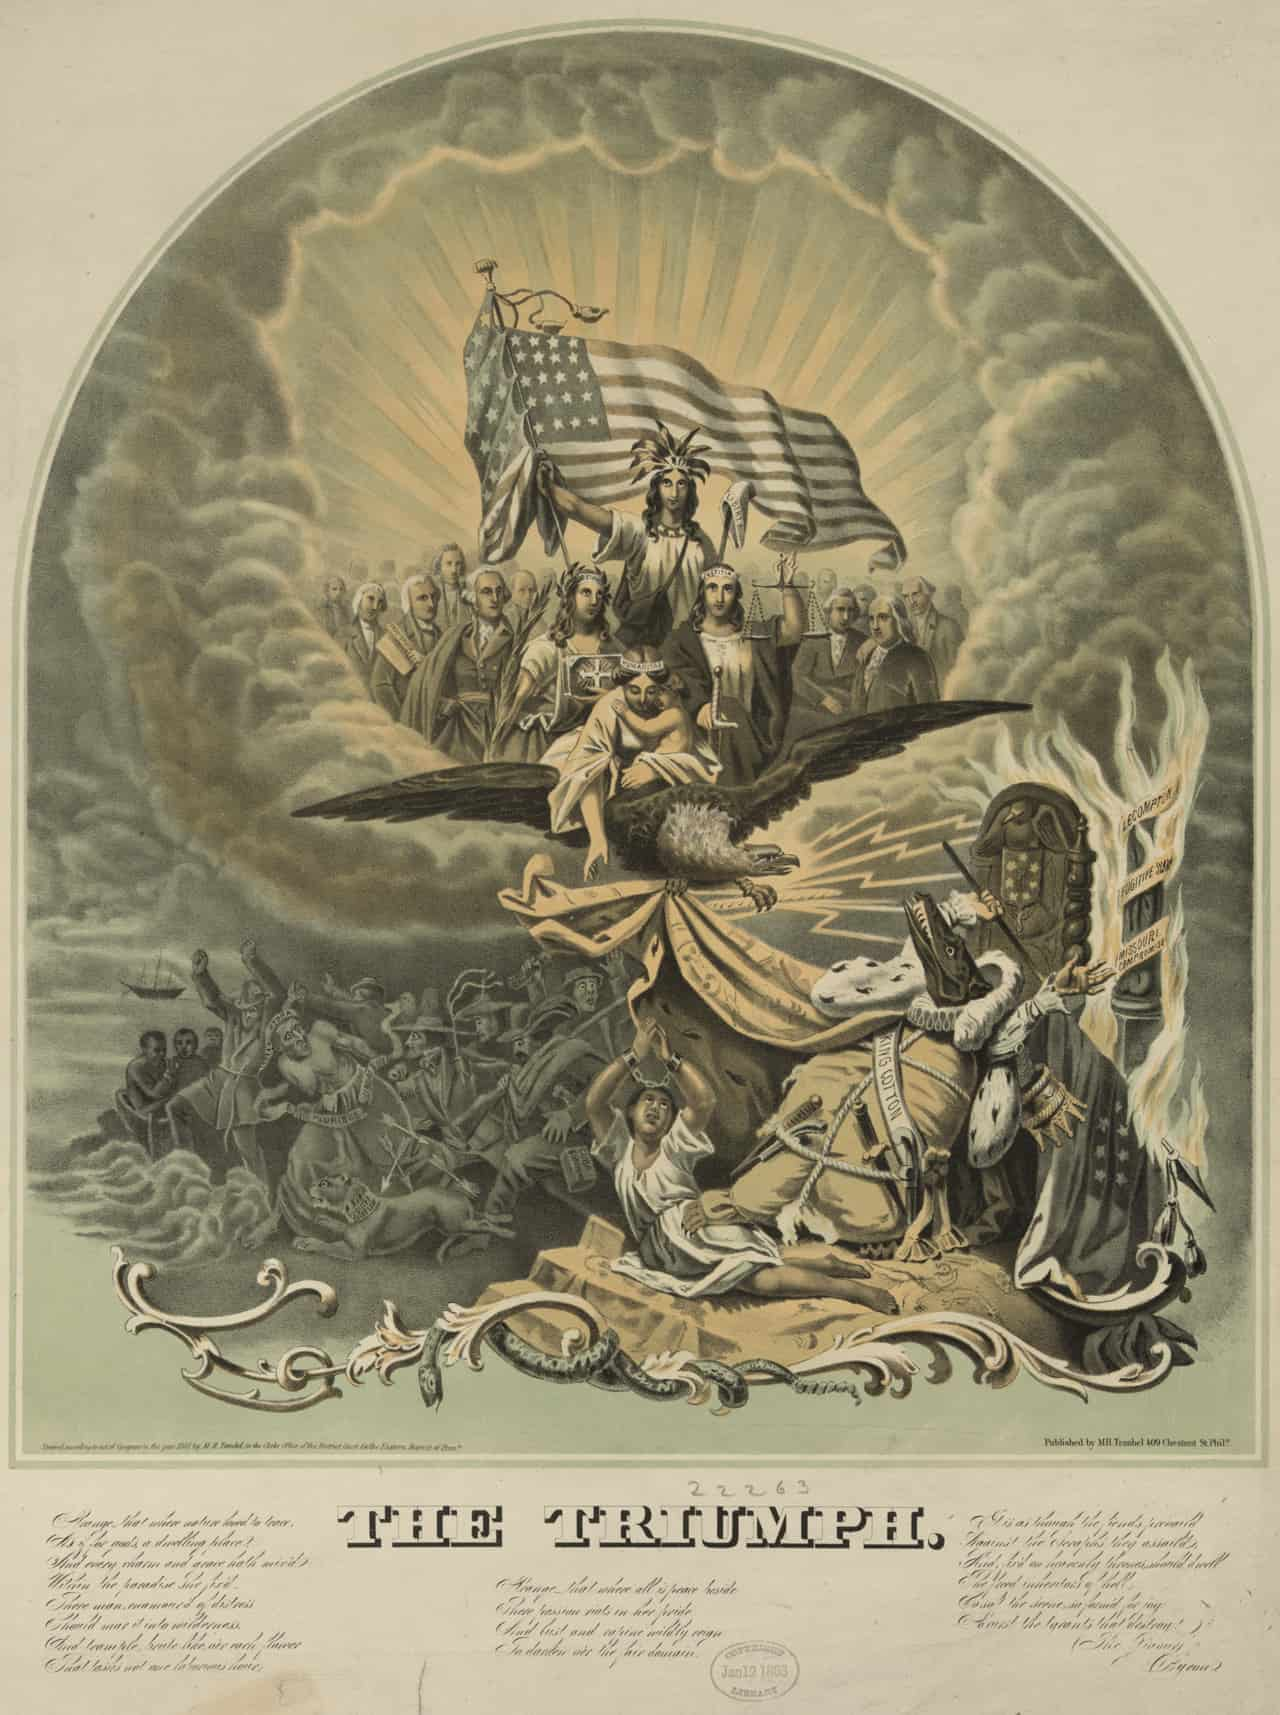 "This large, detailed allegory predicts the triumph of the Union over the dark forces of the Confederacy and ""King Cotton."" The accompanying key, seen below the image, describes the secession of the South in intensely moralistic terms, as the machinations of a cunning ""Hydra of human discord"" that produces treachery and rebellion. The image can be divided into a lower and upper half. In the lower, the forces of darkness are ruled by King Cotton, pictured here as Below are the forces of darkness ruled over by King Cotton, shown here as an alligator-headed monarch with a body of a cotton sack. The terrifying monster sits on a throne next to a burning column with the words ""Lecompton"" (the controversial proslavery Kansas constitution passed in 1857), ""Fugitive Slave [Law],"" and ""Missouri Compromise."" With pistols and daggers in his belt, King Cotton seemingly maintains control over his land, keeping a paw on a manacled slave who looks upward toward a ""sublime apparition"" appearing in clouds the clouds above. Here Freedom, wearing an Indian bonnet and holding a liberty cap, appears with a large American flag amid a crowd of deities and historical figures, including George Washington, Benjamin Franklin, and Thomas Jefferson. Christianity (left) and Justice (right) attends Freedom. Immediately in front of her is ""Humanitas,"" borne by an eagle and holding an infant and reaching towards the supplicant slave below. The eagle fiercely clutches the hem of King Cotton's cloak and wields several lightning bolts, which have ignited the terrified monarch's throne. Other symbols of slavery are terrorized by this vision of the Union's triumph."